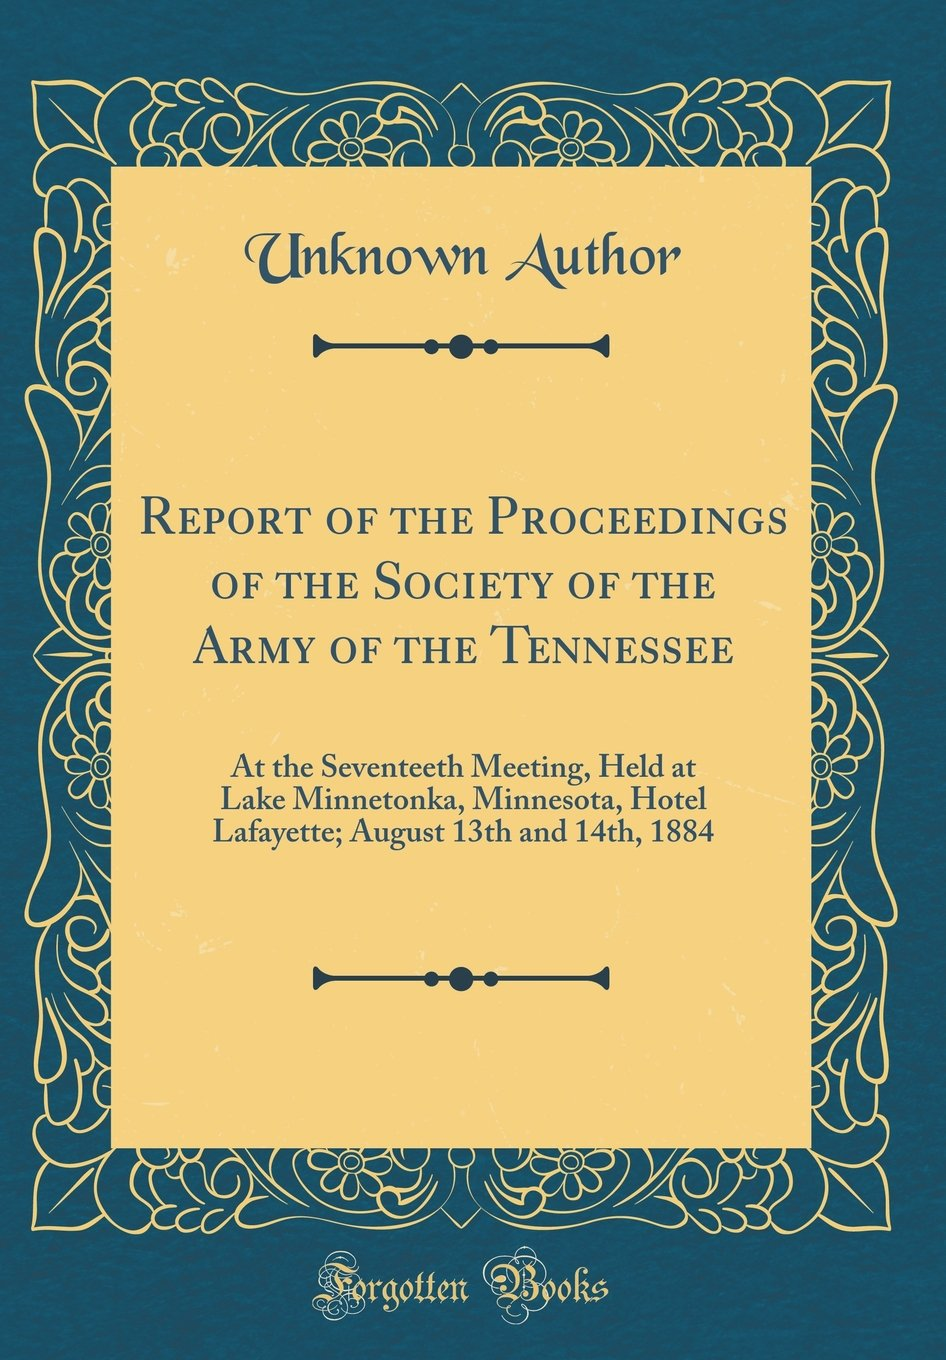 Report of the Proceedings of the Society of the Army of the Tennessee: At the Seventeeth Meeting, Held at Lake Minnetonka, Minnesota, Hotel Lafayette; August 13th and 14th, 1884 (Classic Reprint) pdf